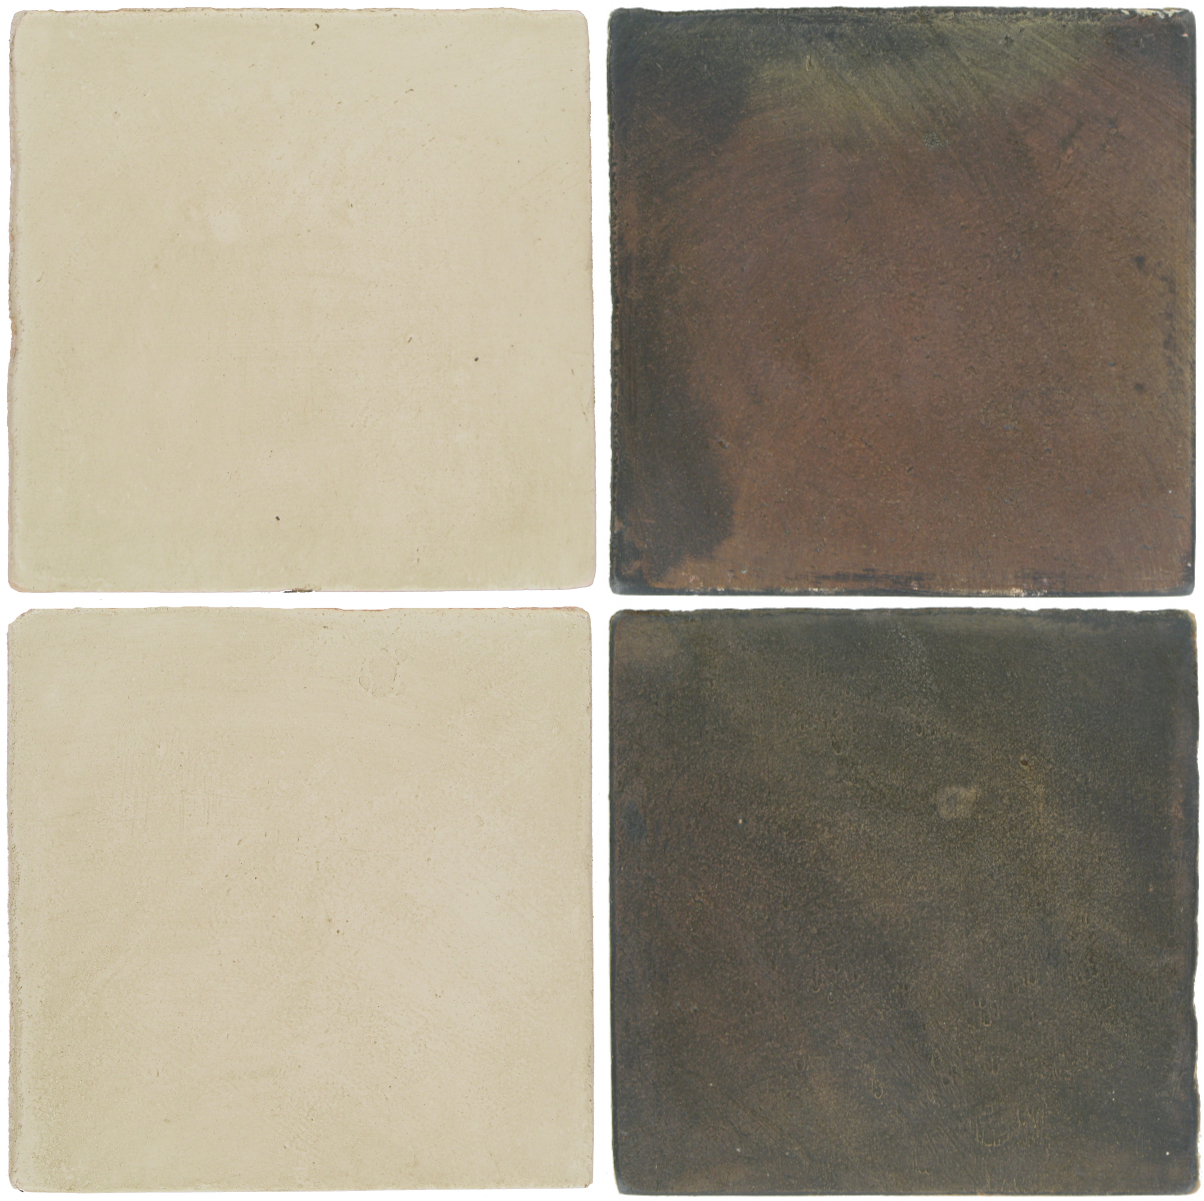 Pedralbes Antique Terracotta  2 Color Combinations  OHS-PGLW Glacier White + OHS-PSTG Terra Grey